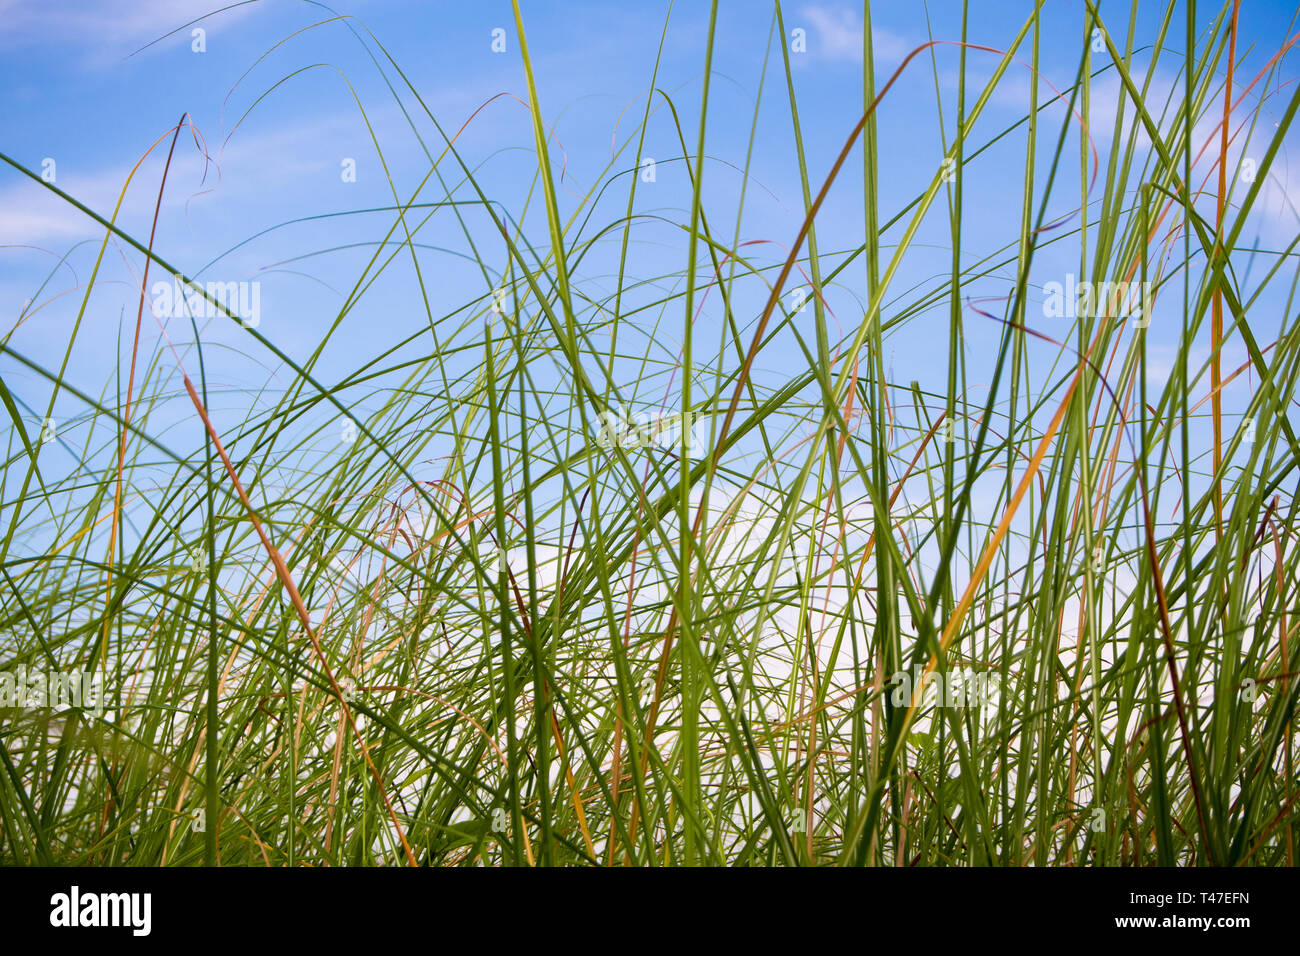 Freshness Vetiver Grass blade in the countryside - Stock Image